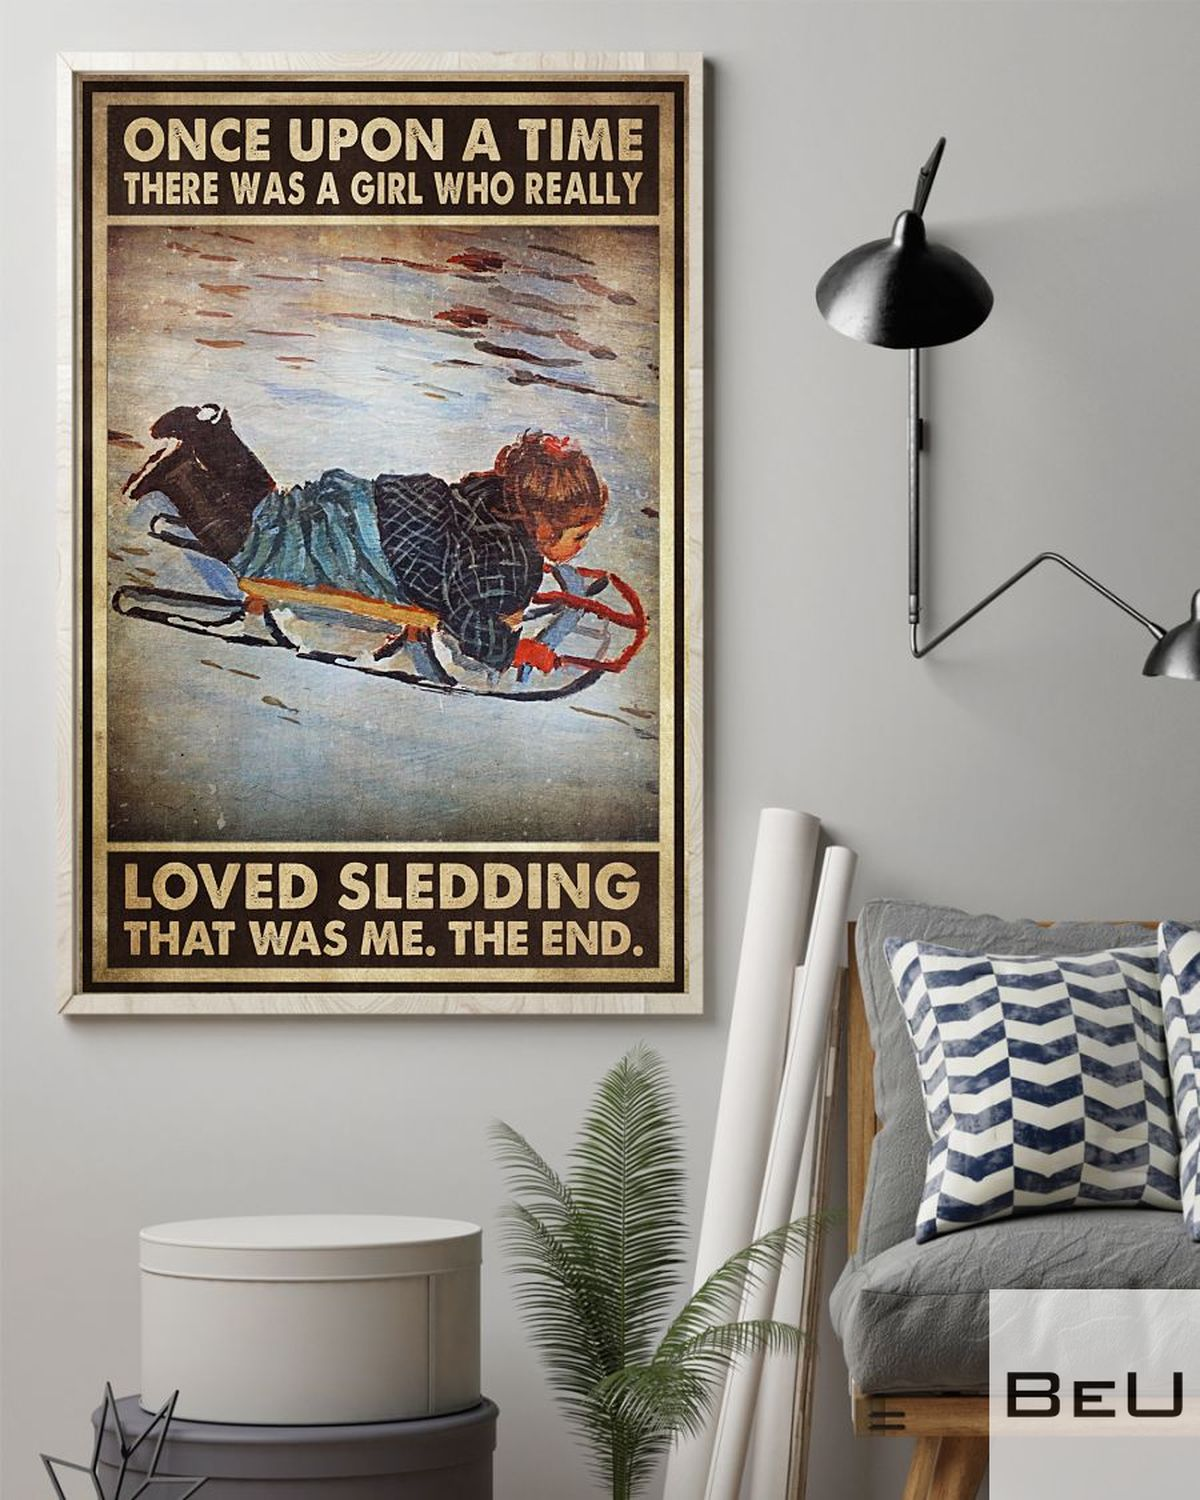 Once Upon A Time There Was A Girl Who Really Loved Sledding That Was Me Poster z